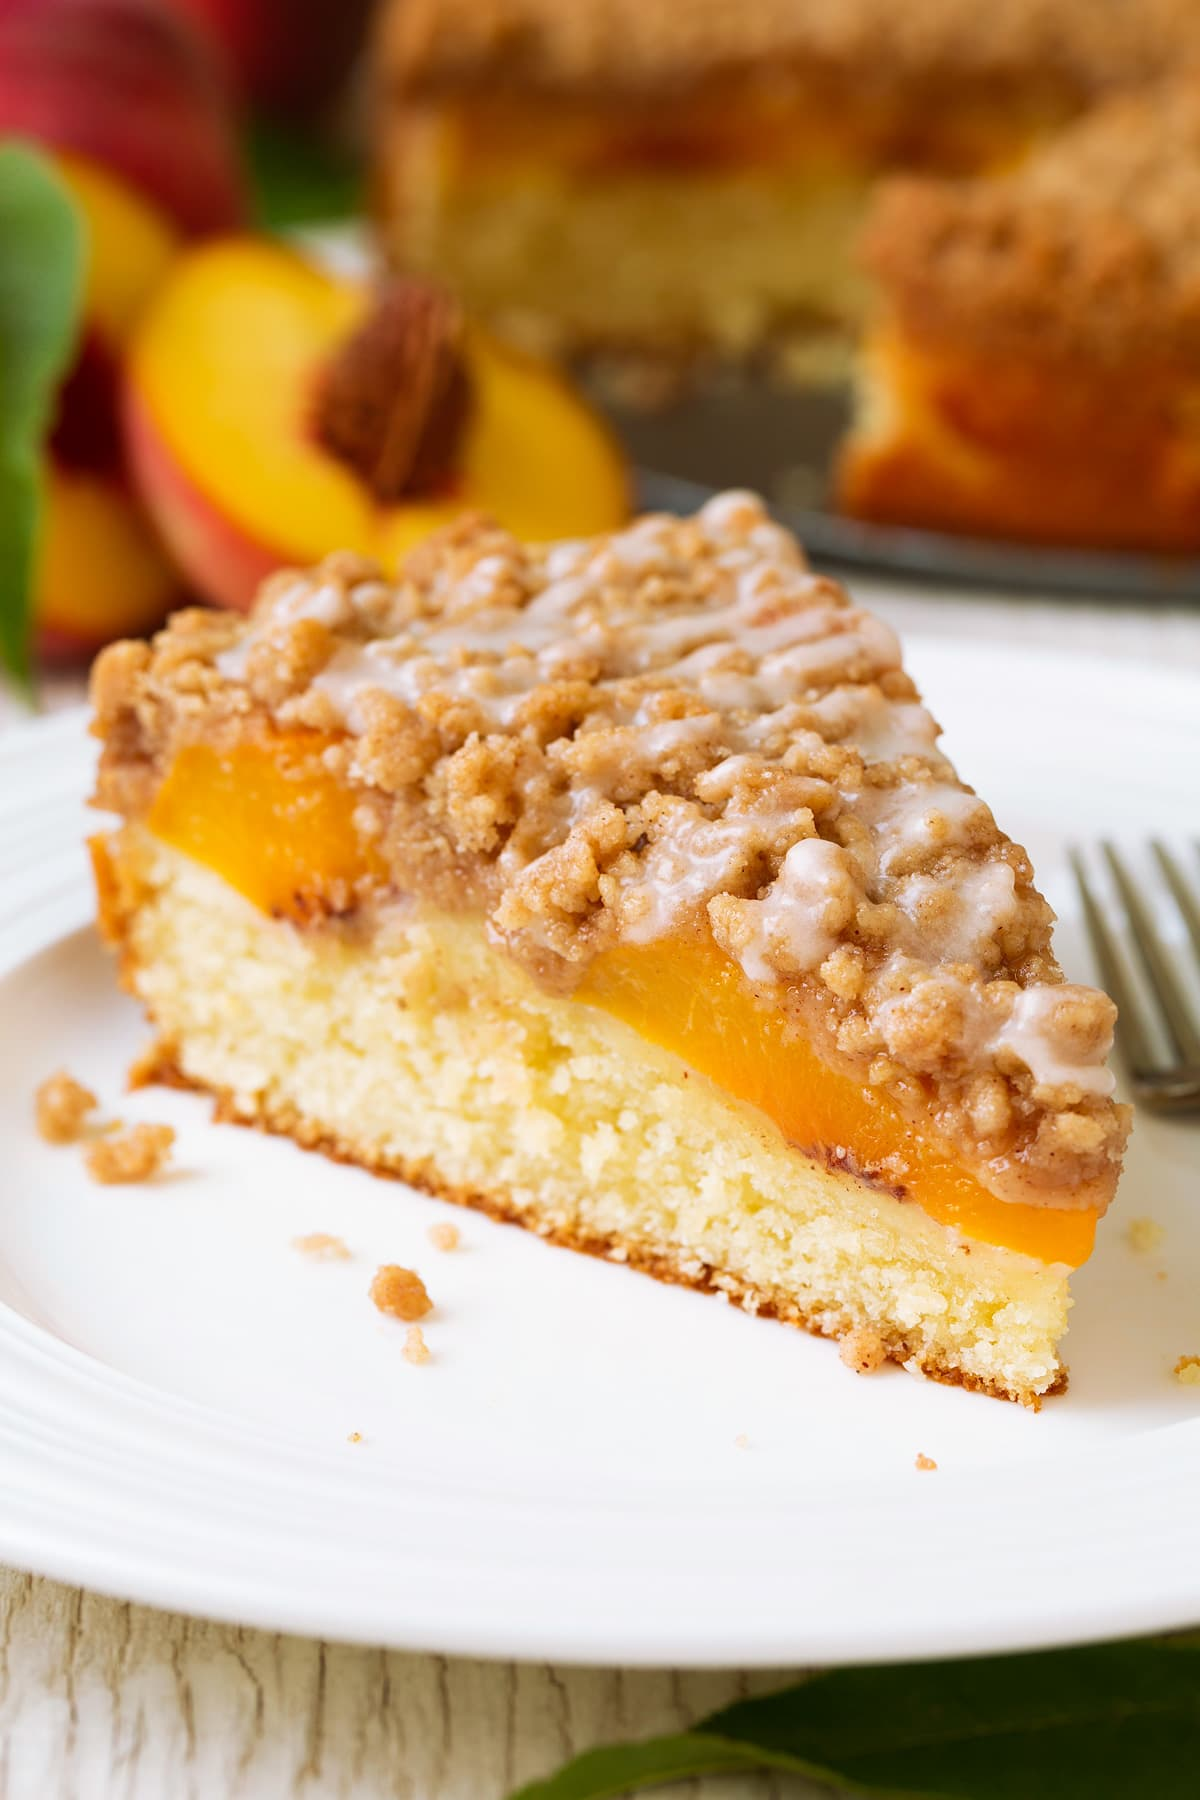 Slice of peach coffee cake